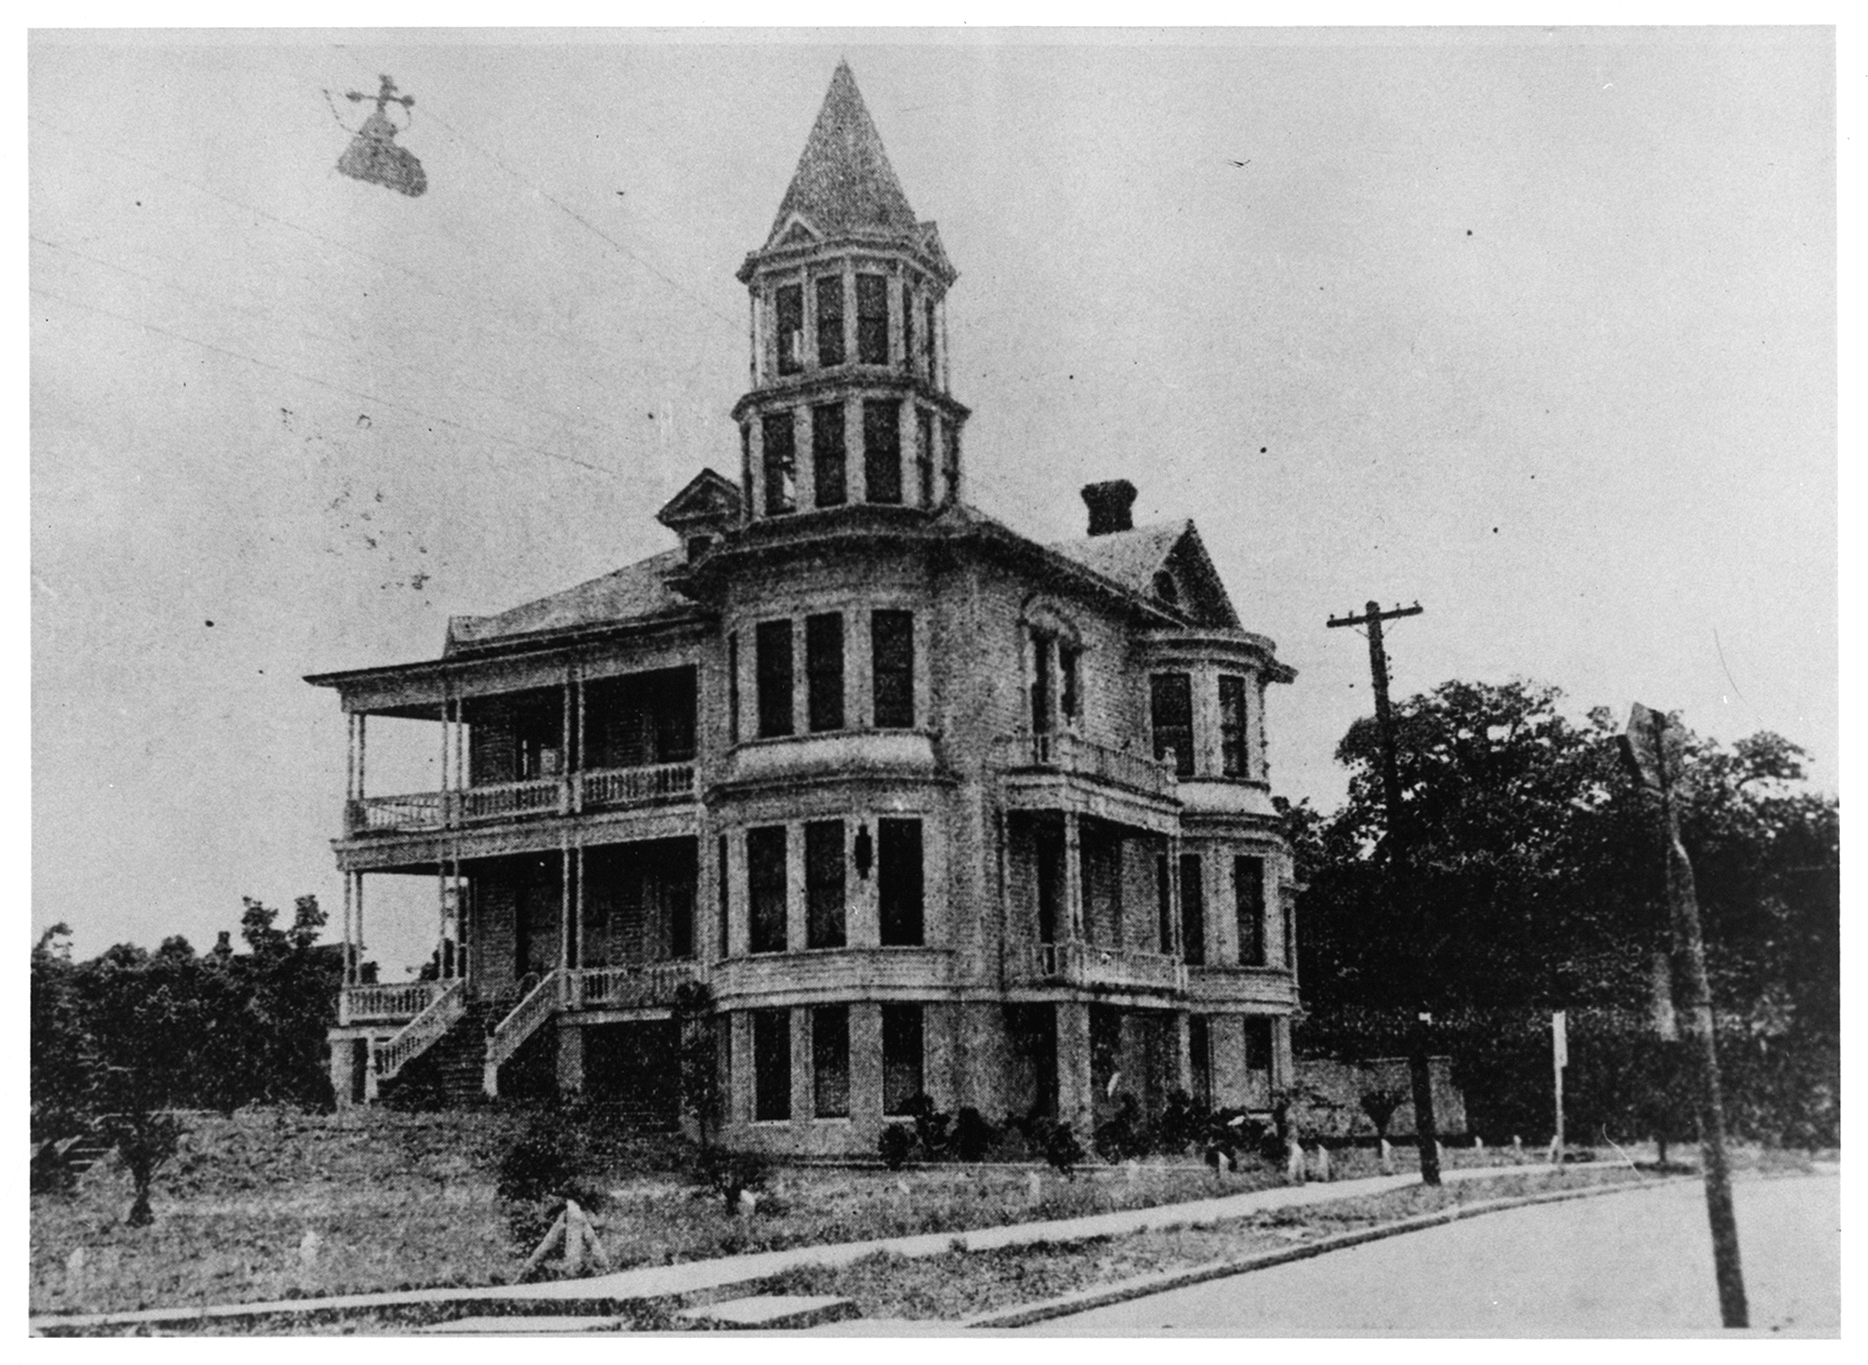 HIstoric Dr. James S. Herron Home - Formerly at 519 N. Palafox Street - Built 1884